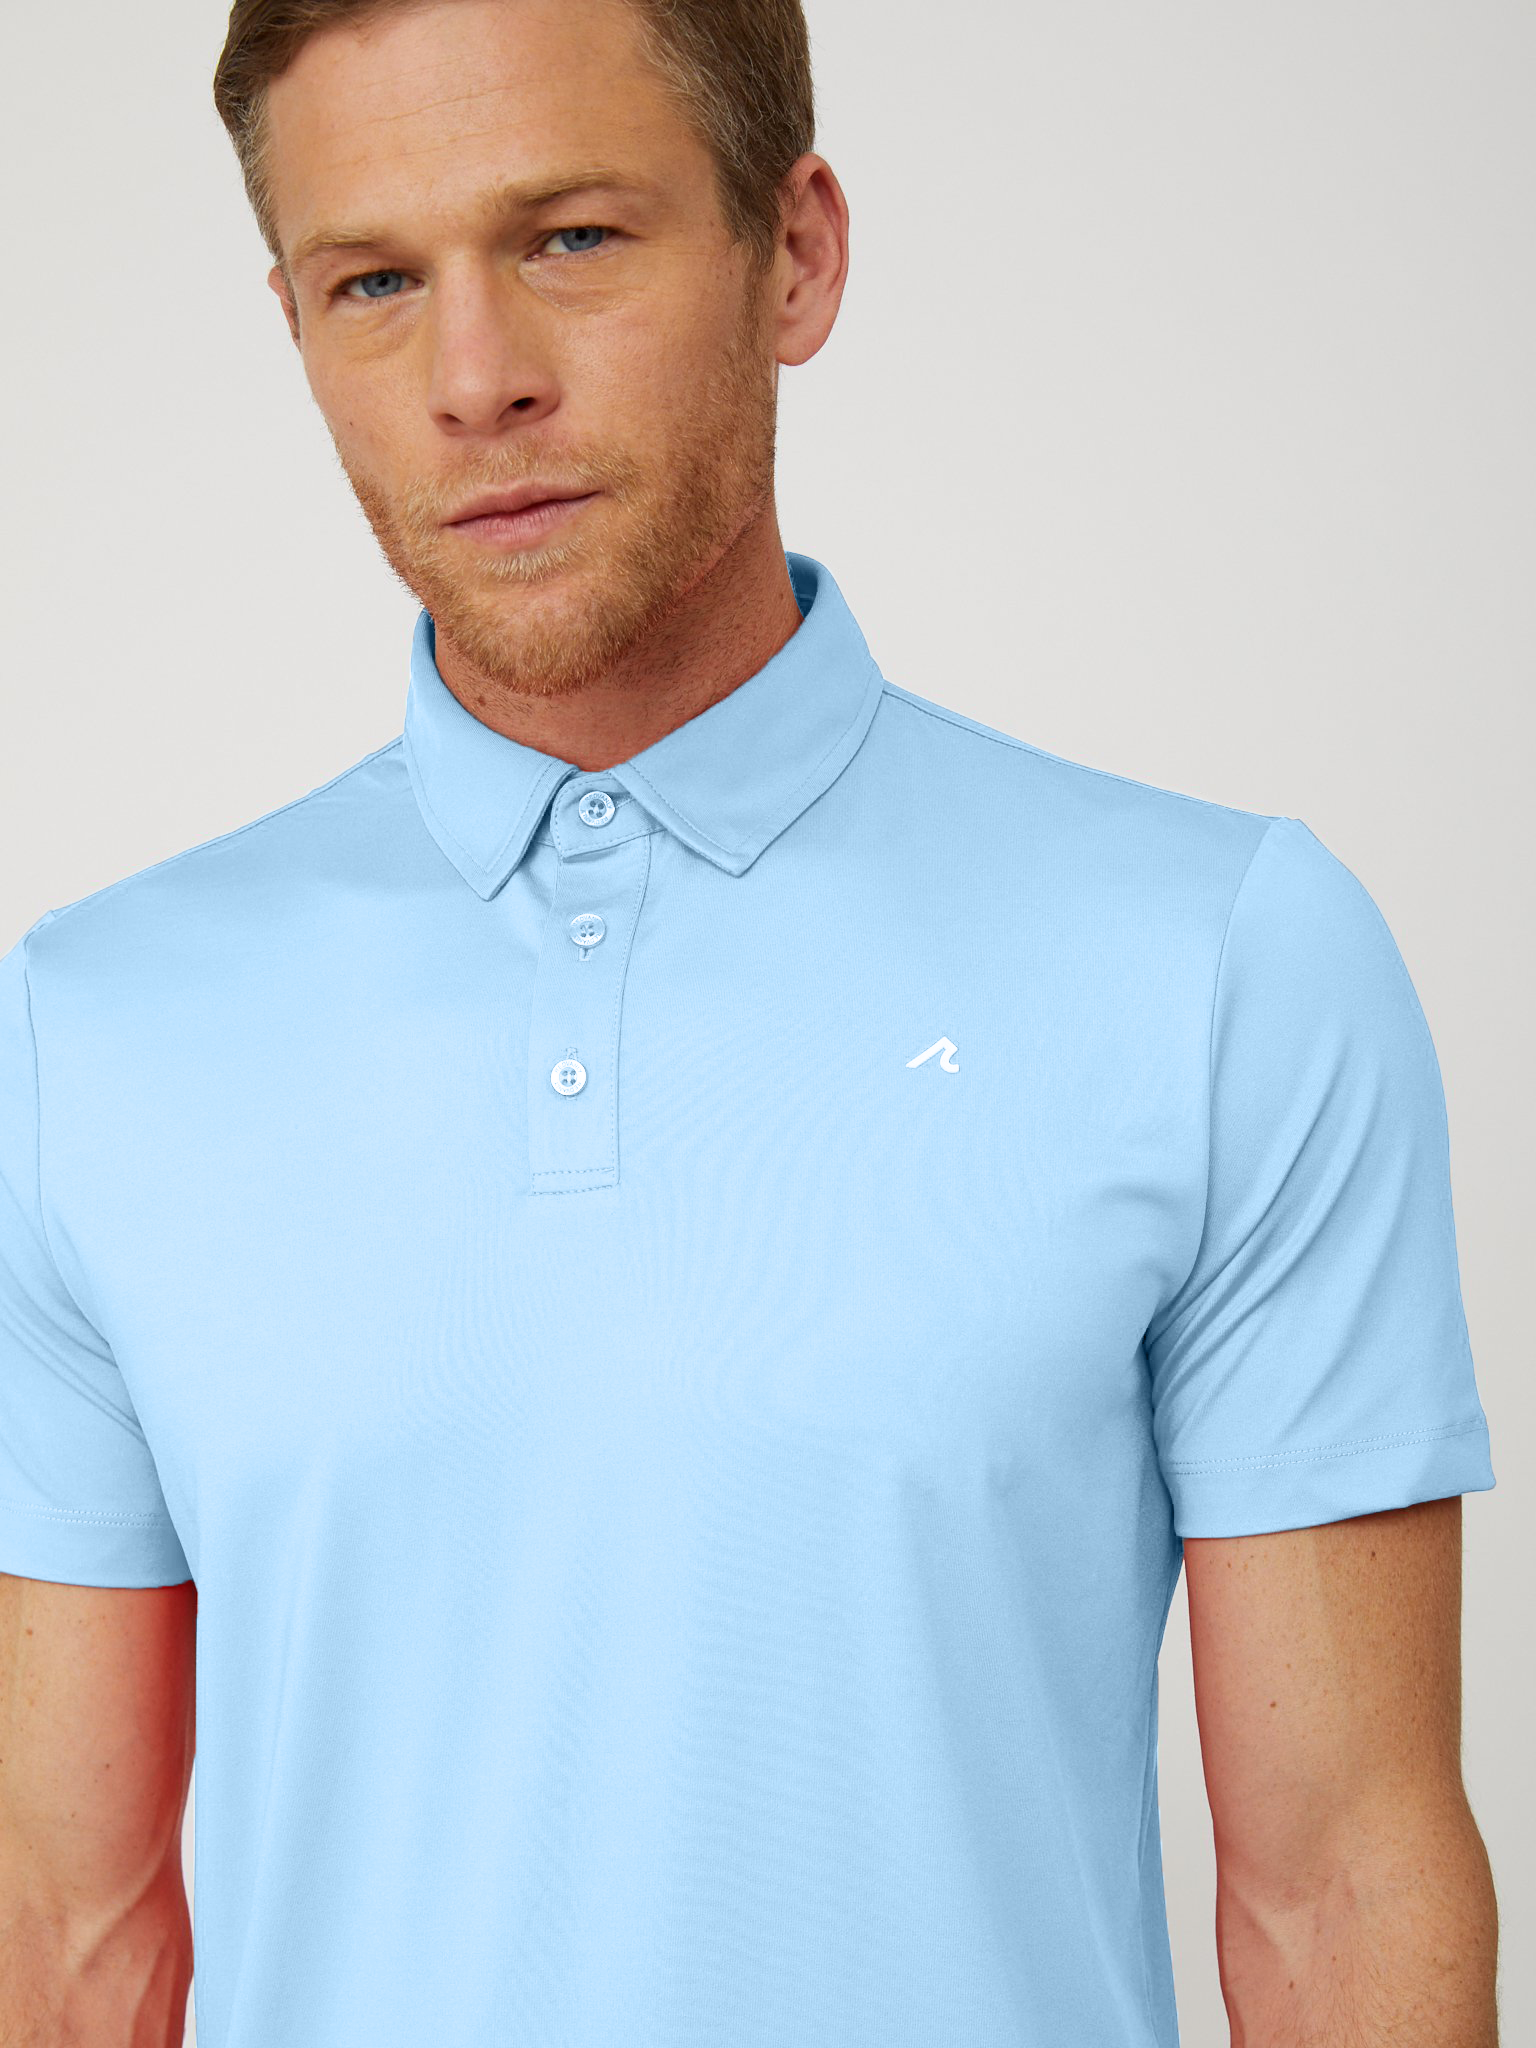 Degrom Polo in Placid Blue/White